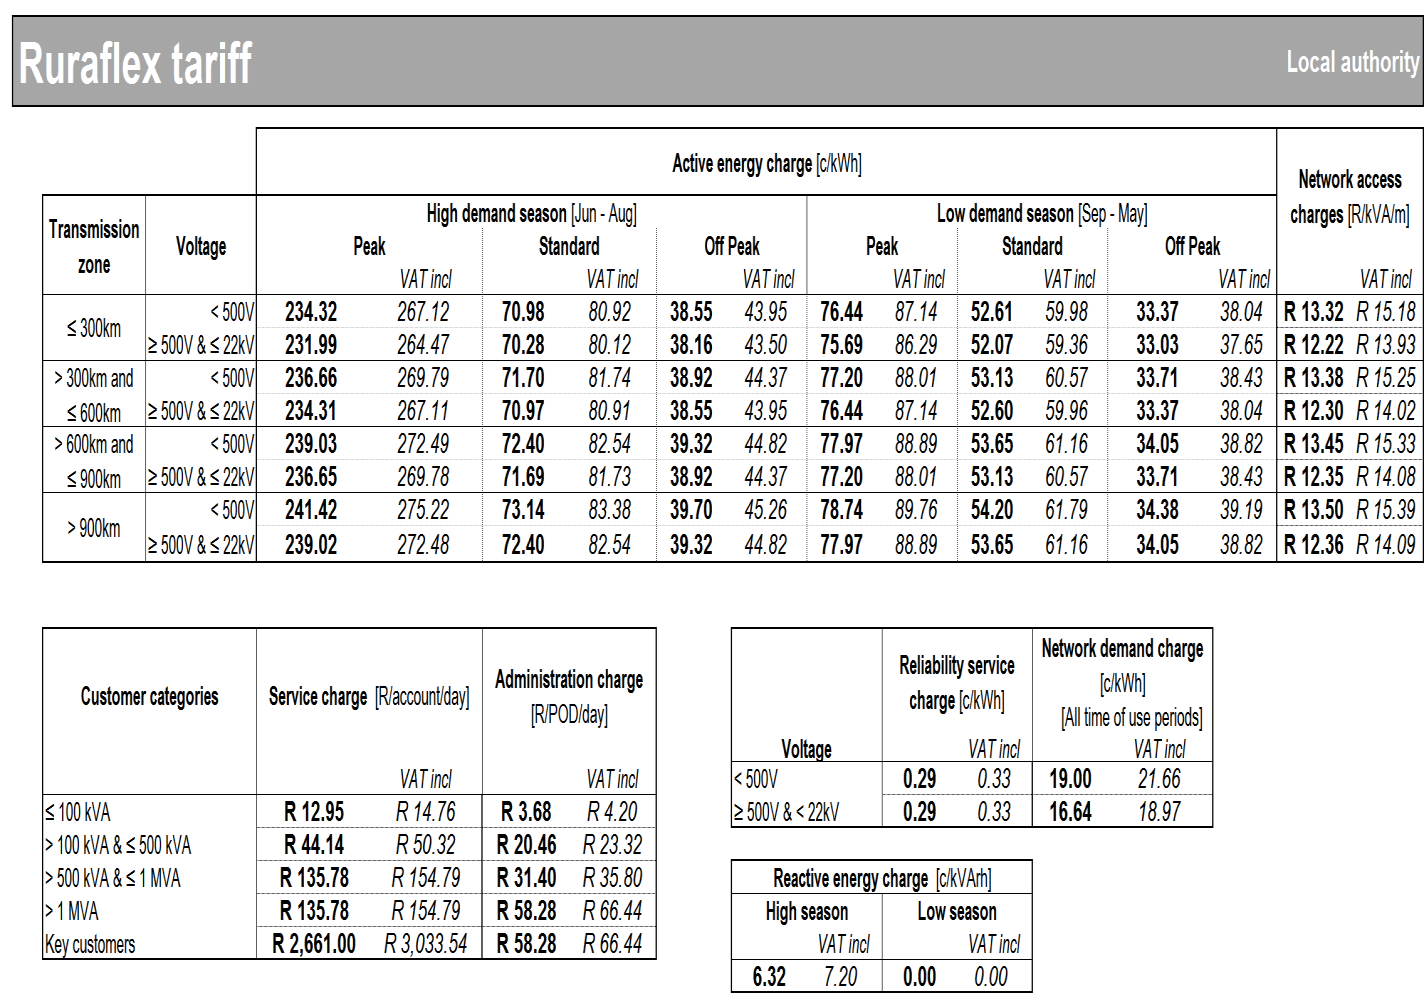 Table 34 Ruraflex non-local authority tariff